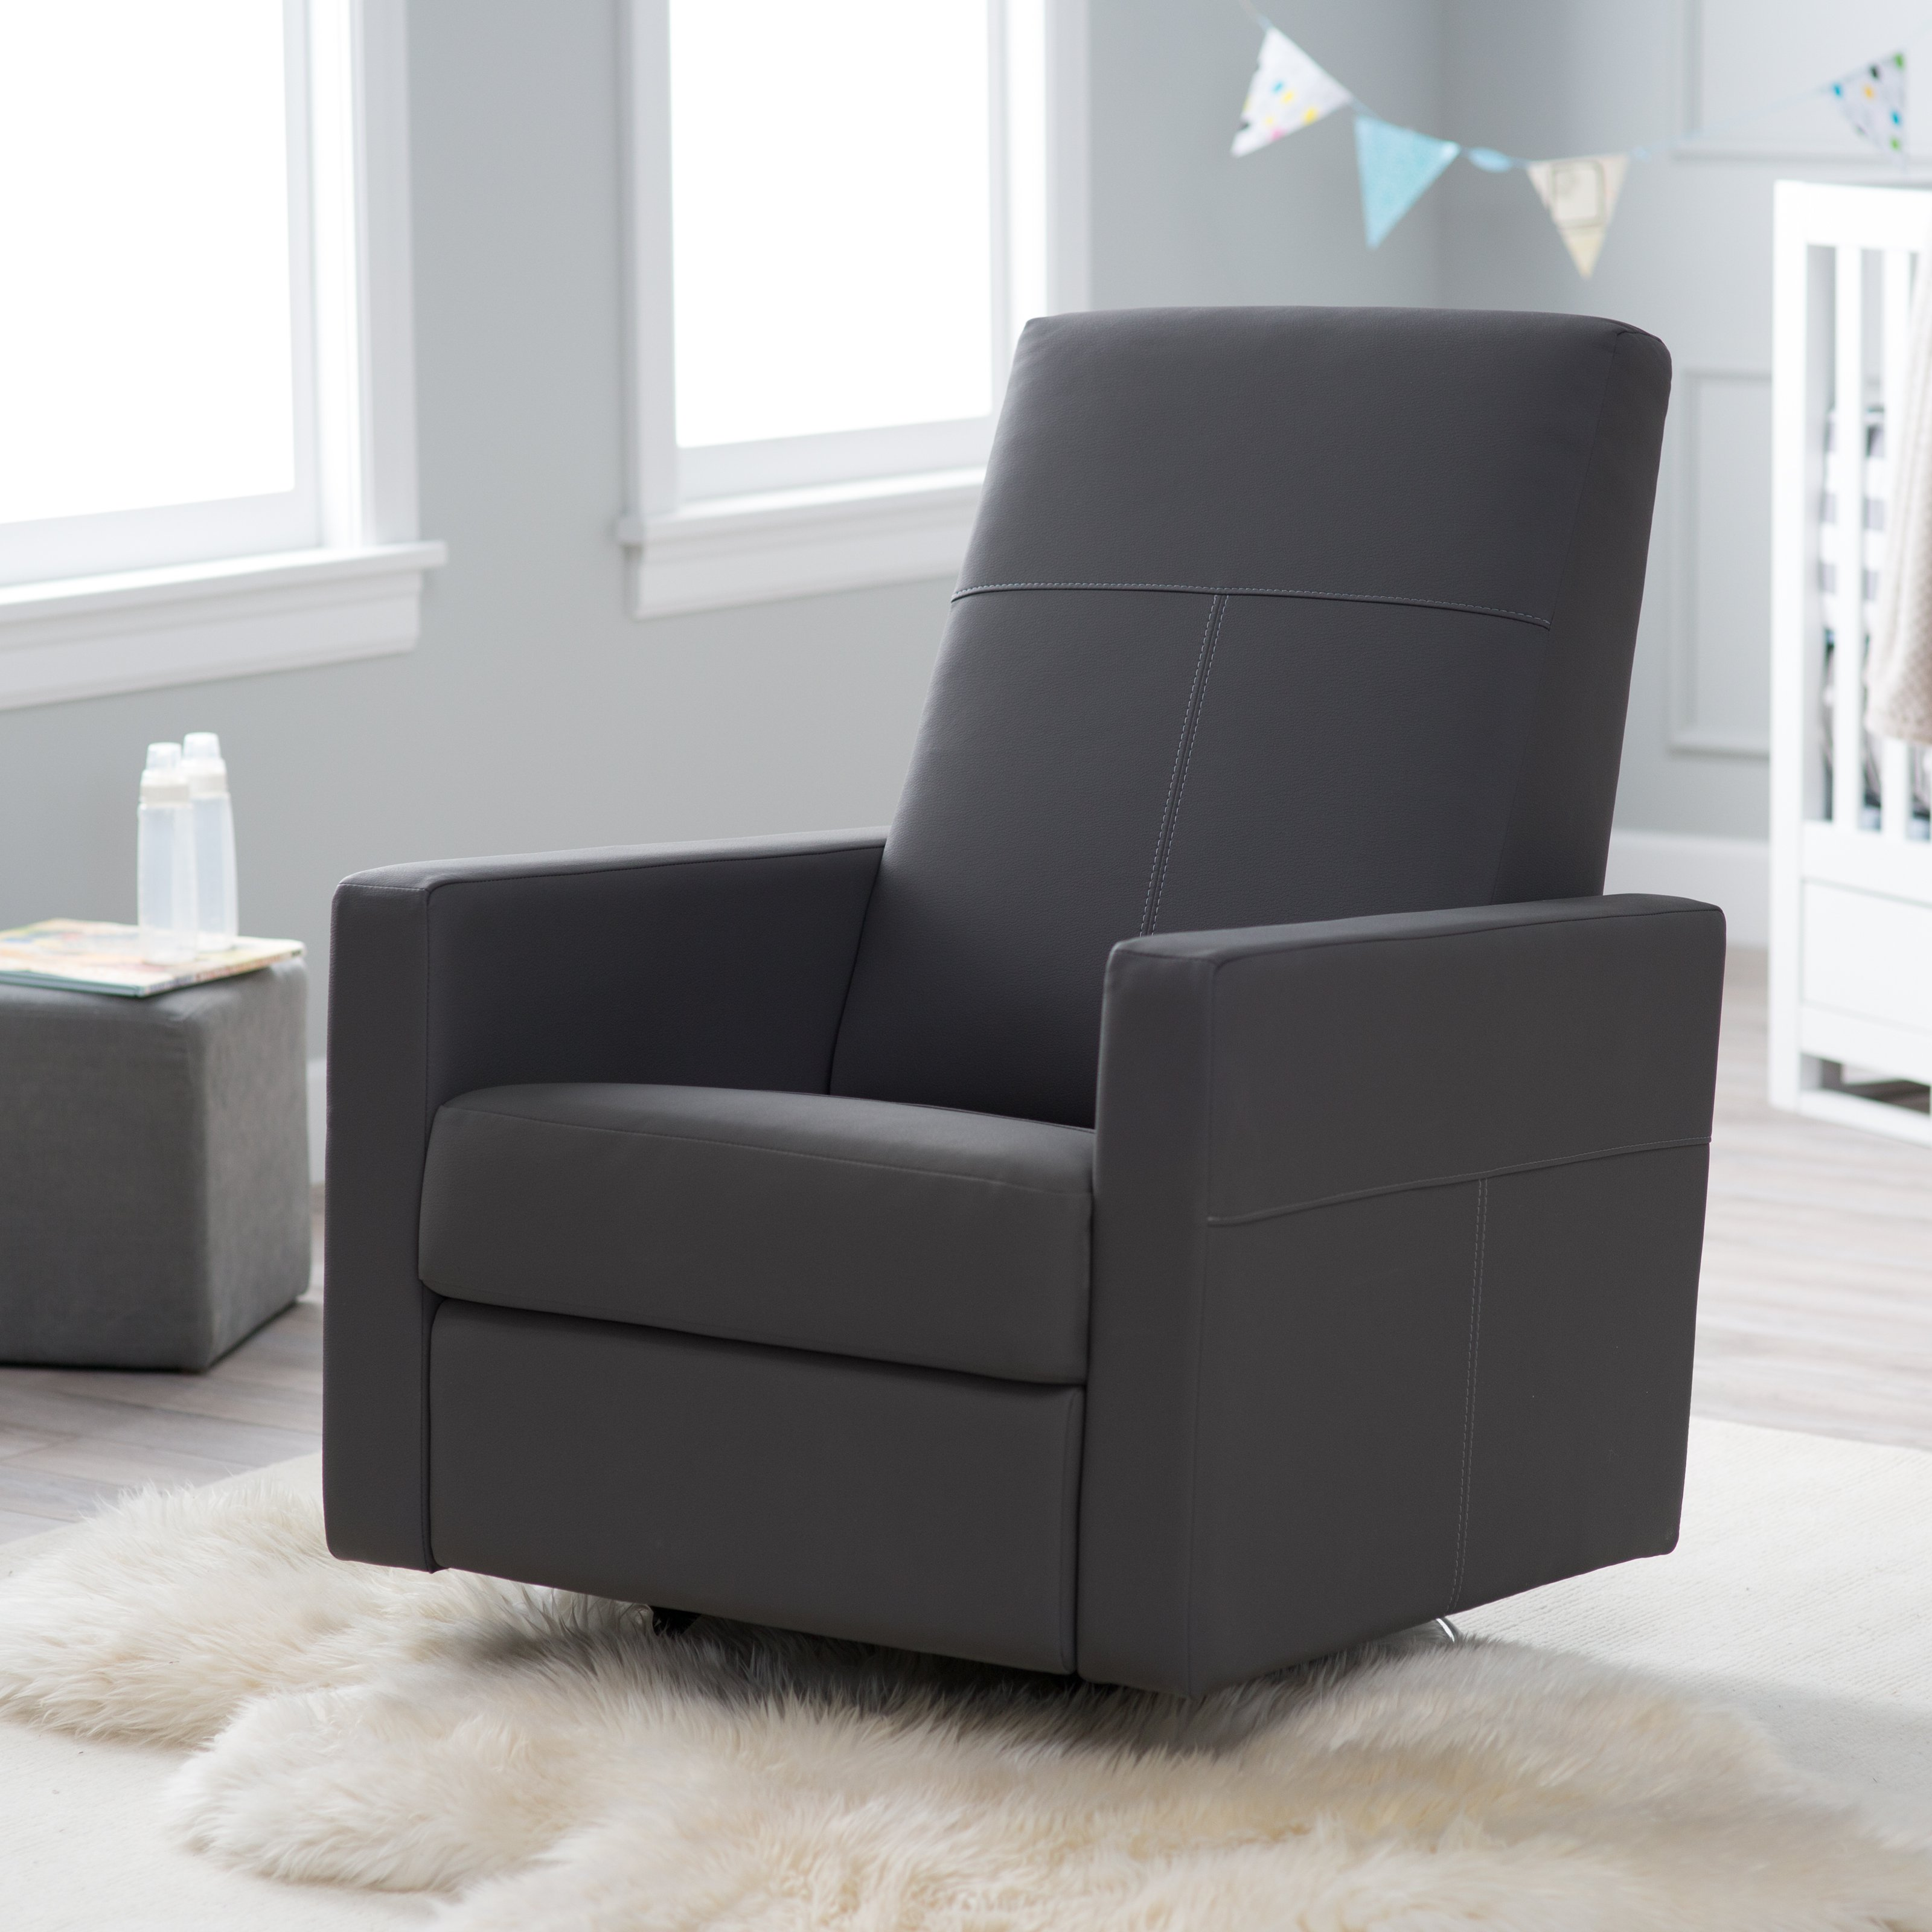 Sleigh Glider and Ottoman Set | Dutailier Ultramotion | Dutailier Glider Chair